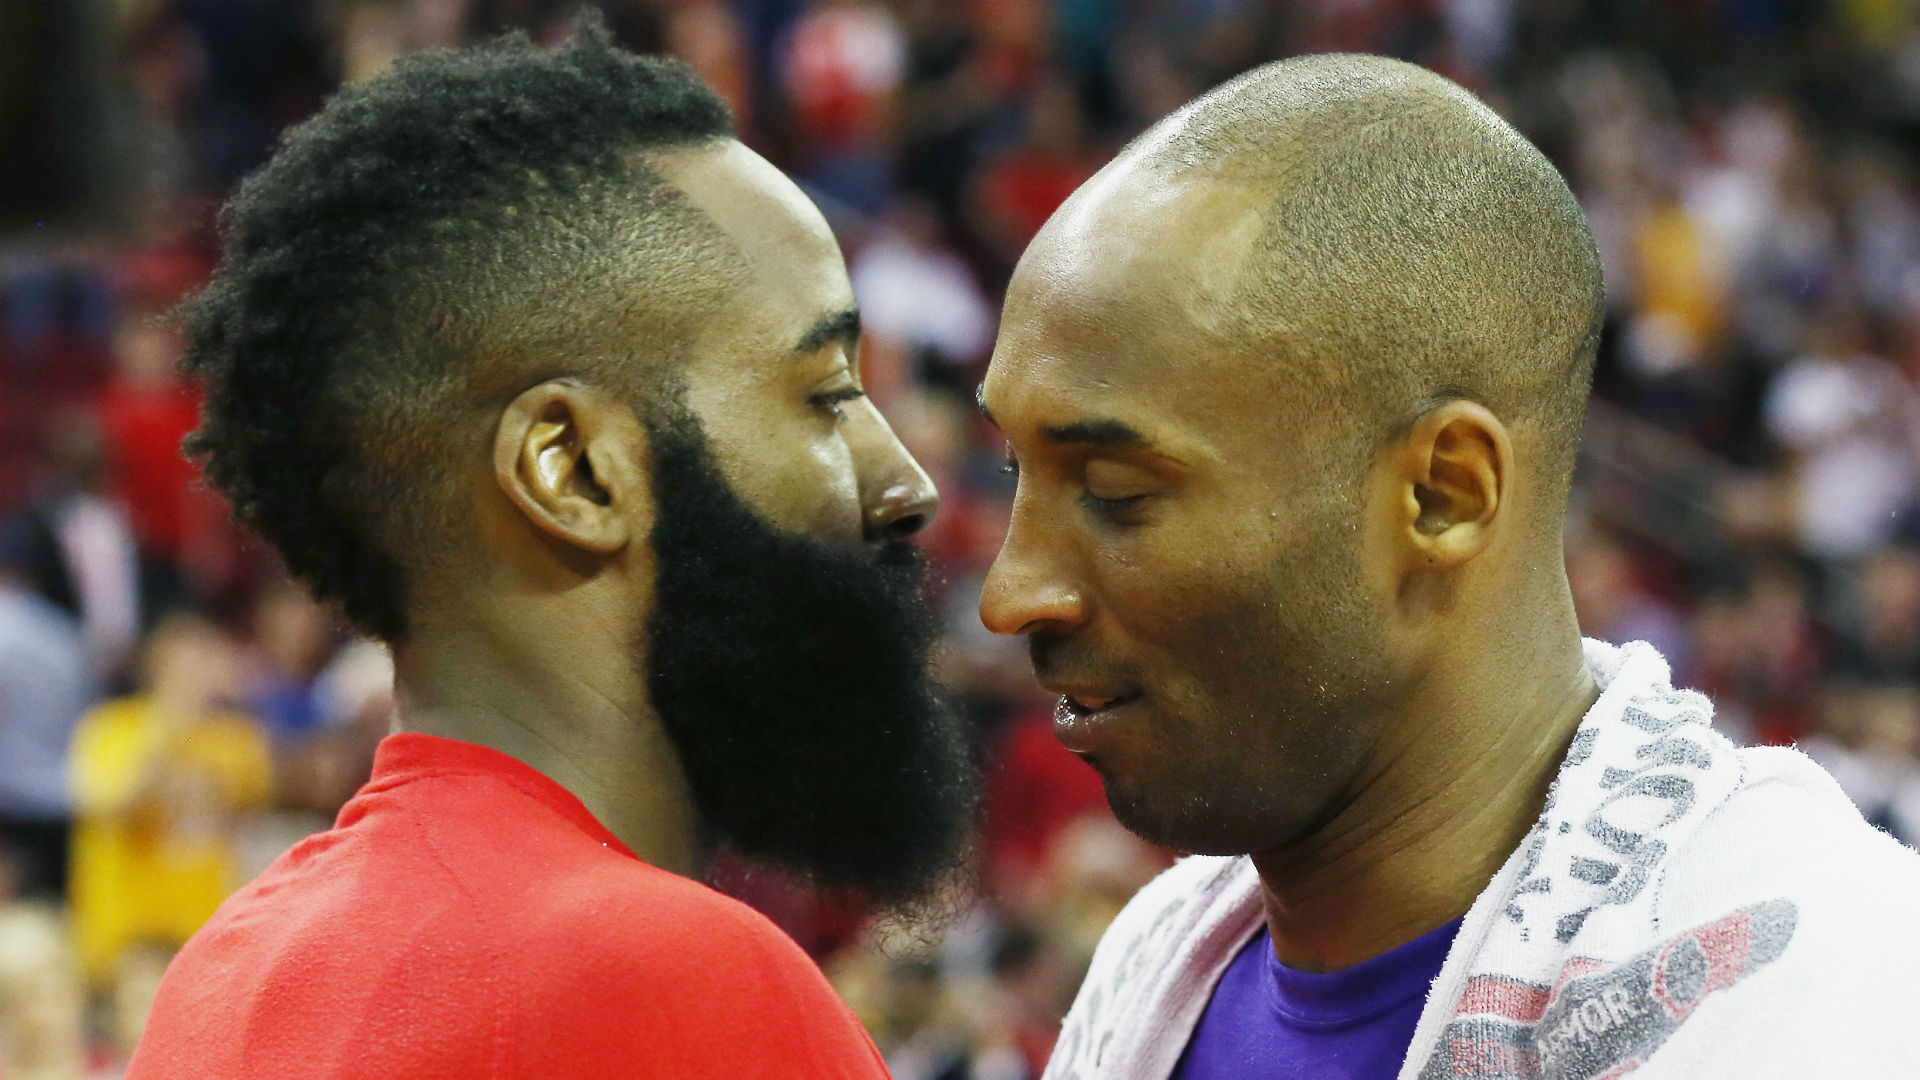 Here's what the Rockets did before the National Basketball Association trade deadline